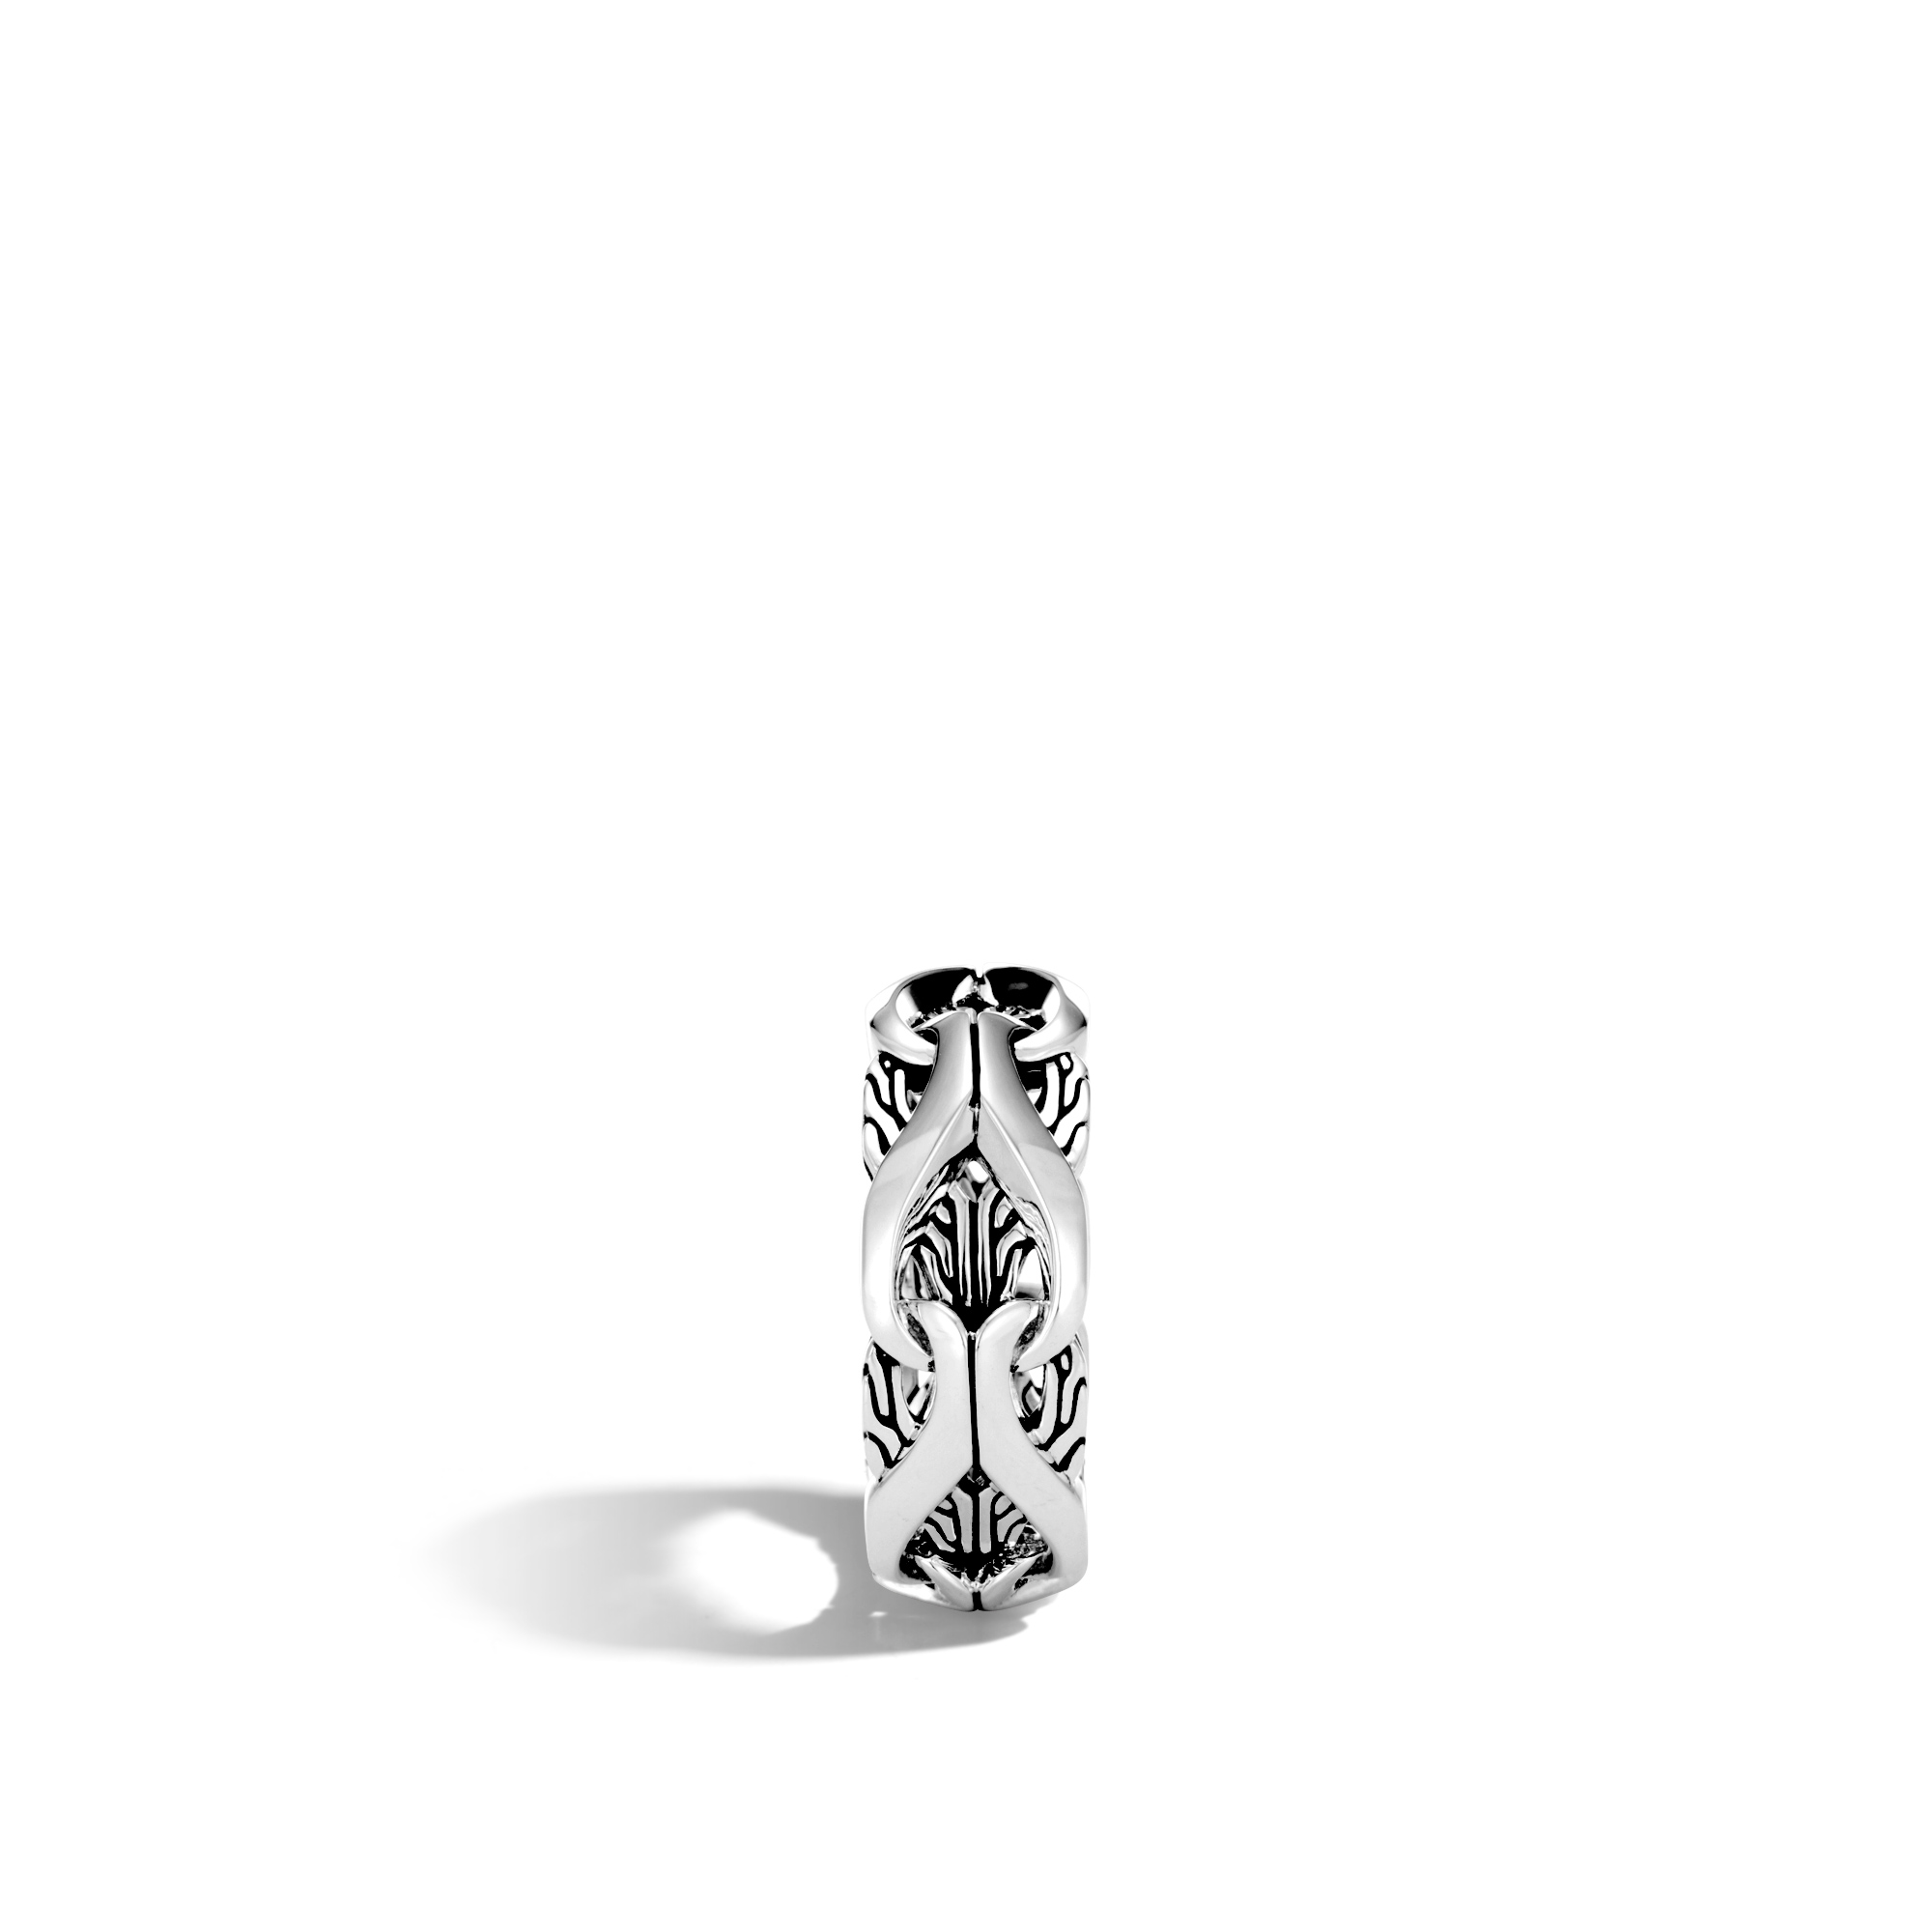 Asli Classic Chain Link 9MM Band Ring in Silver, , large